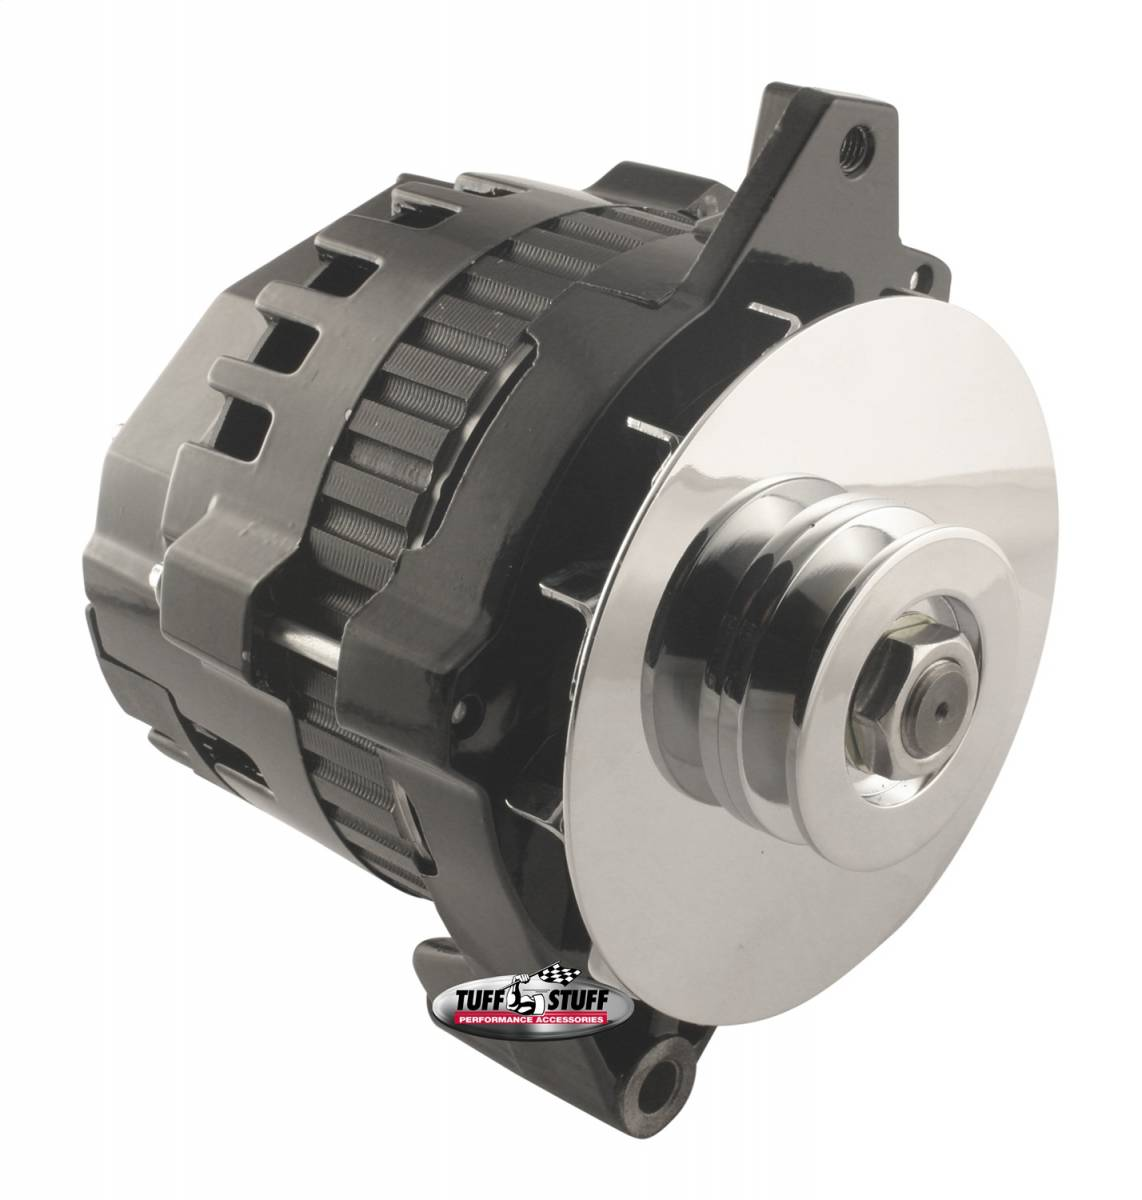 Tuff Stuff Performance - Alternator 105 AMP 1 Wire Or OEM V Groove Pulley Double Wide Heavy Duty Ball Bearings Internal And External Cooling Fans Black 7935E